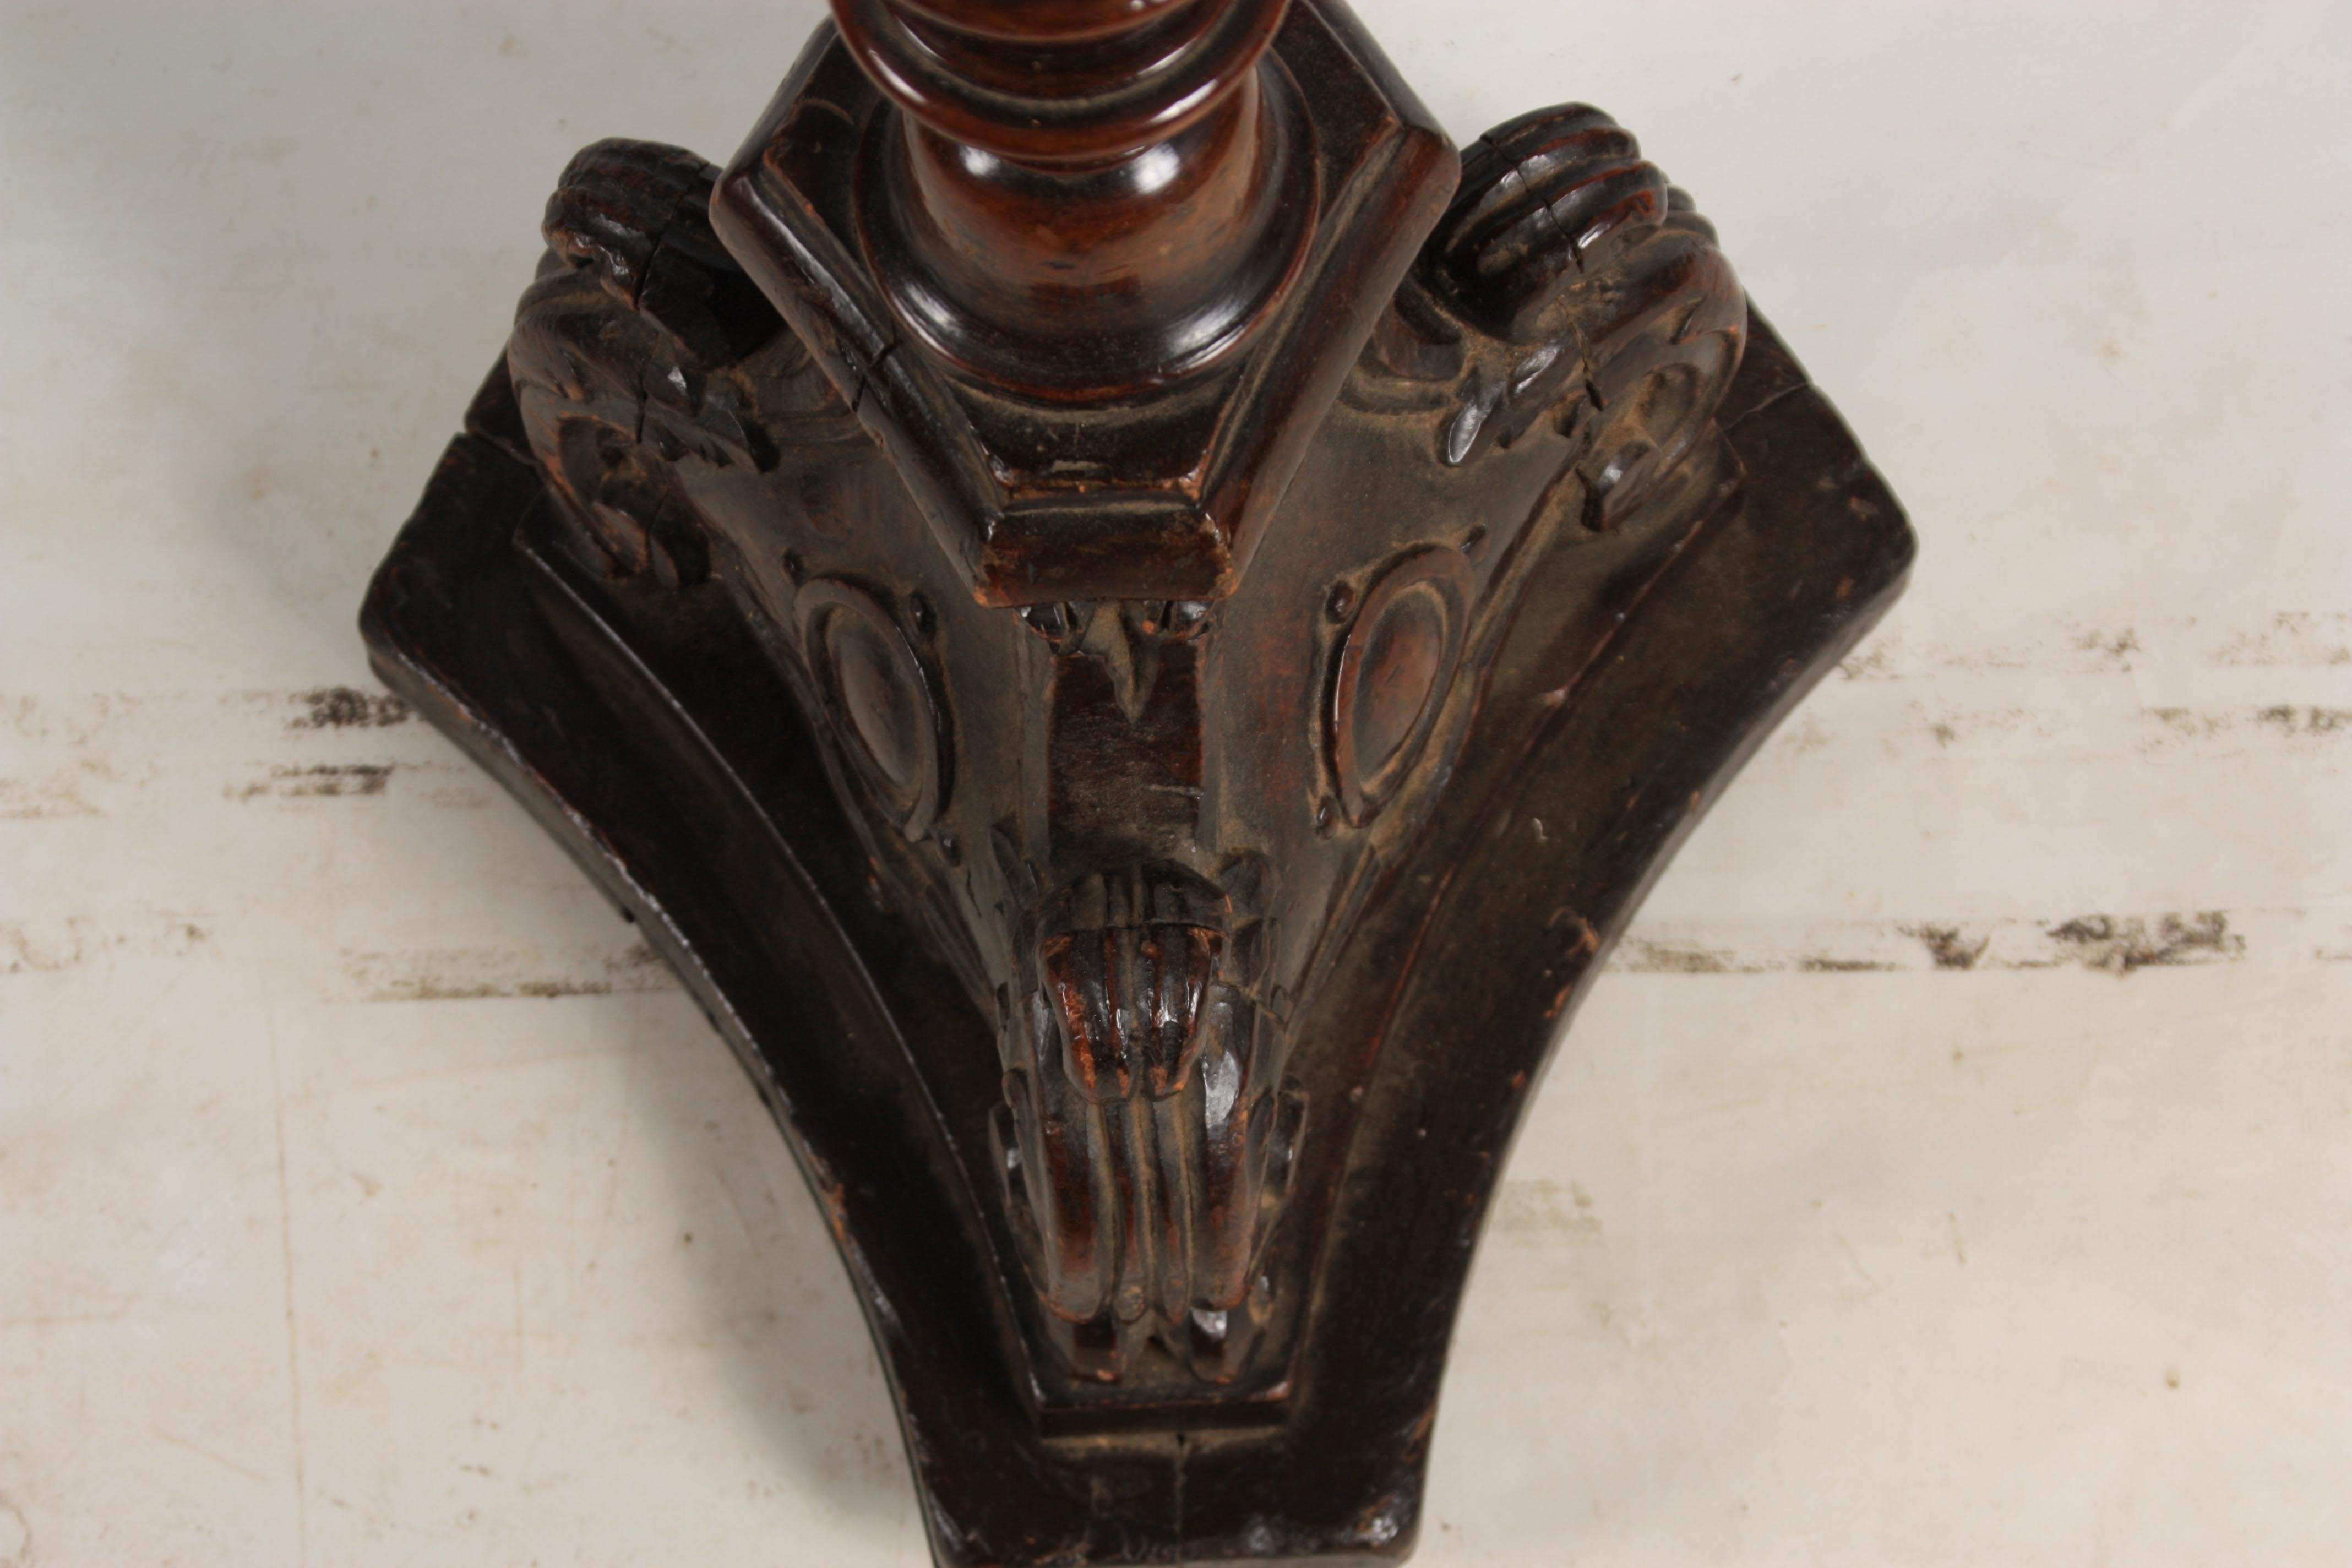 AN EARLY 18TH CENTURY ITALIAN TURNED WALNUT TORCHERE with bulbous ring turned stem and carved rococo - Image 6 of 6